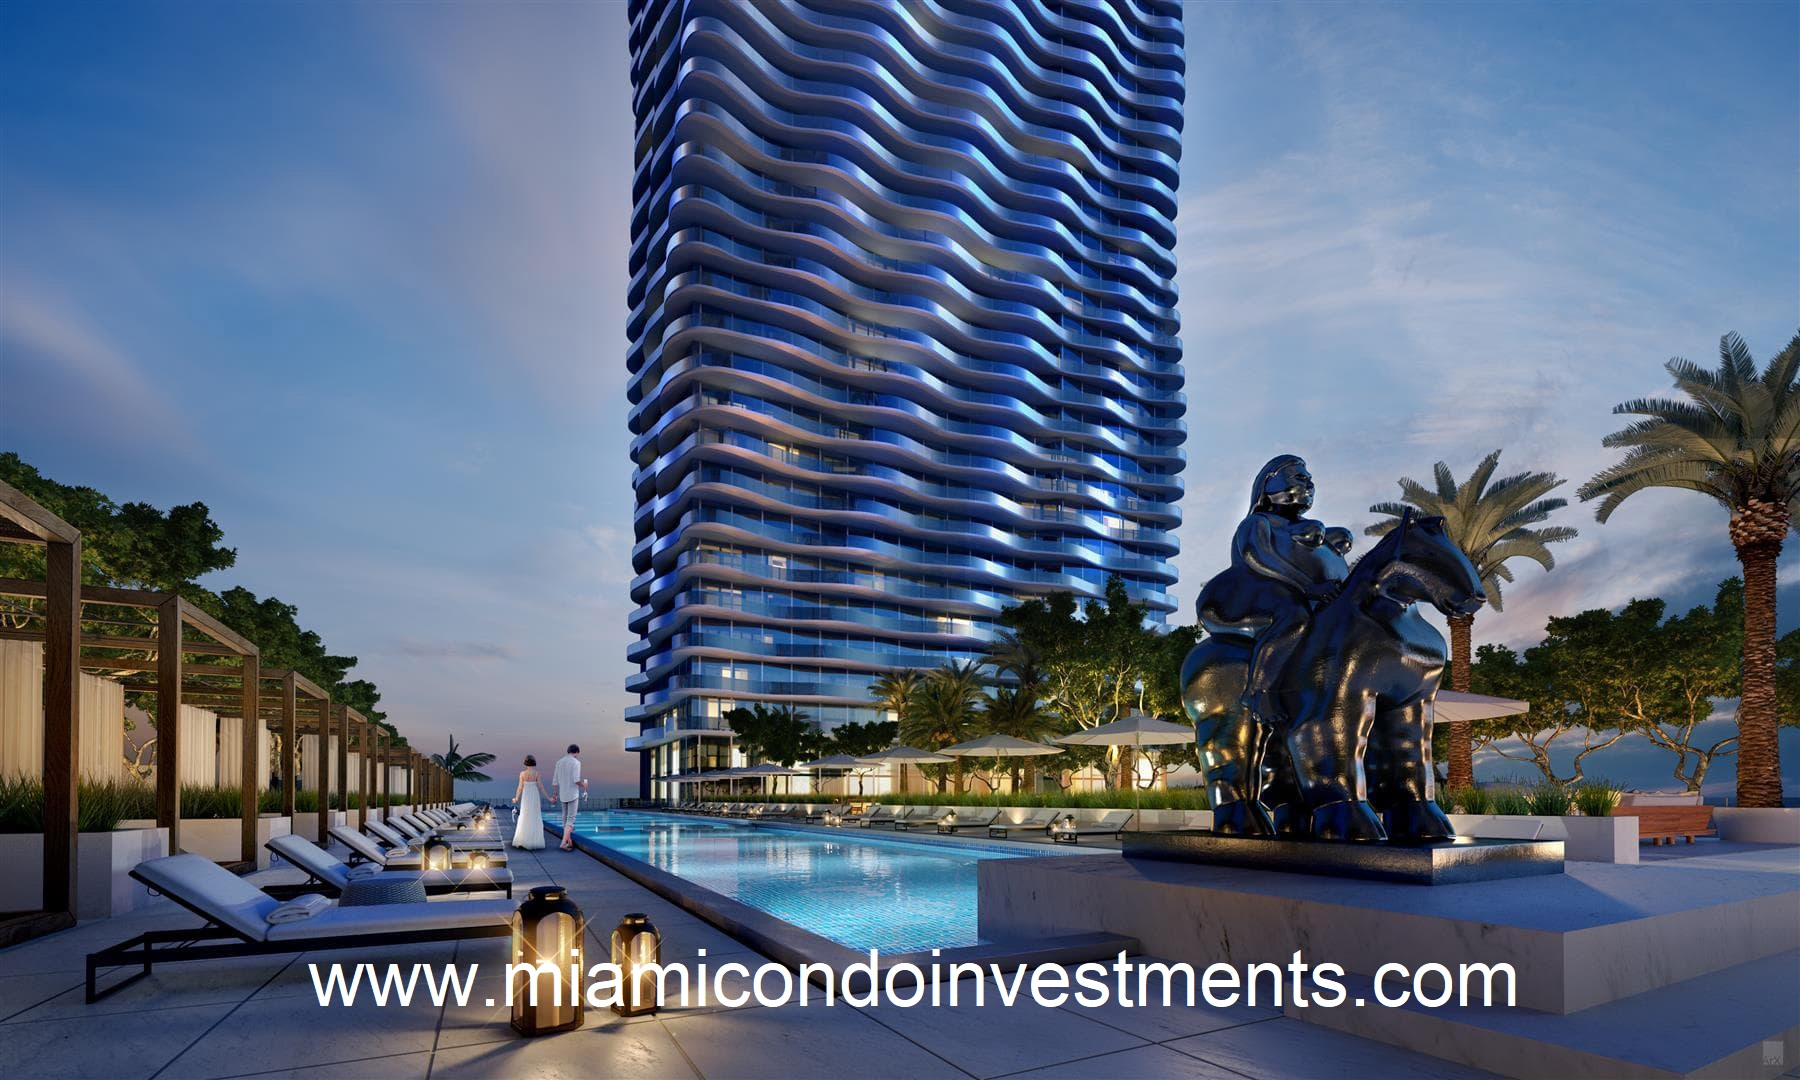 1400 Biscayne New Construction